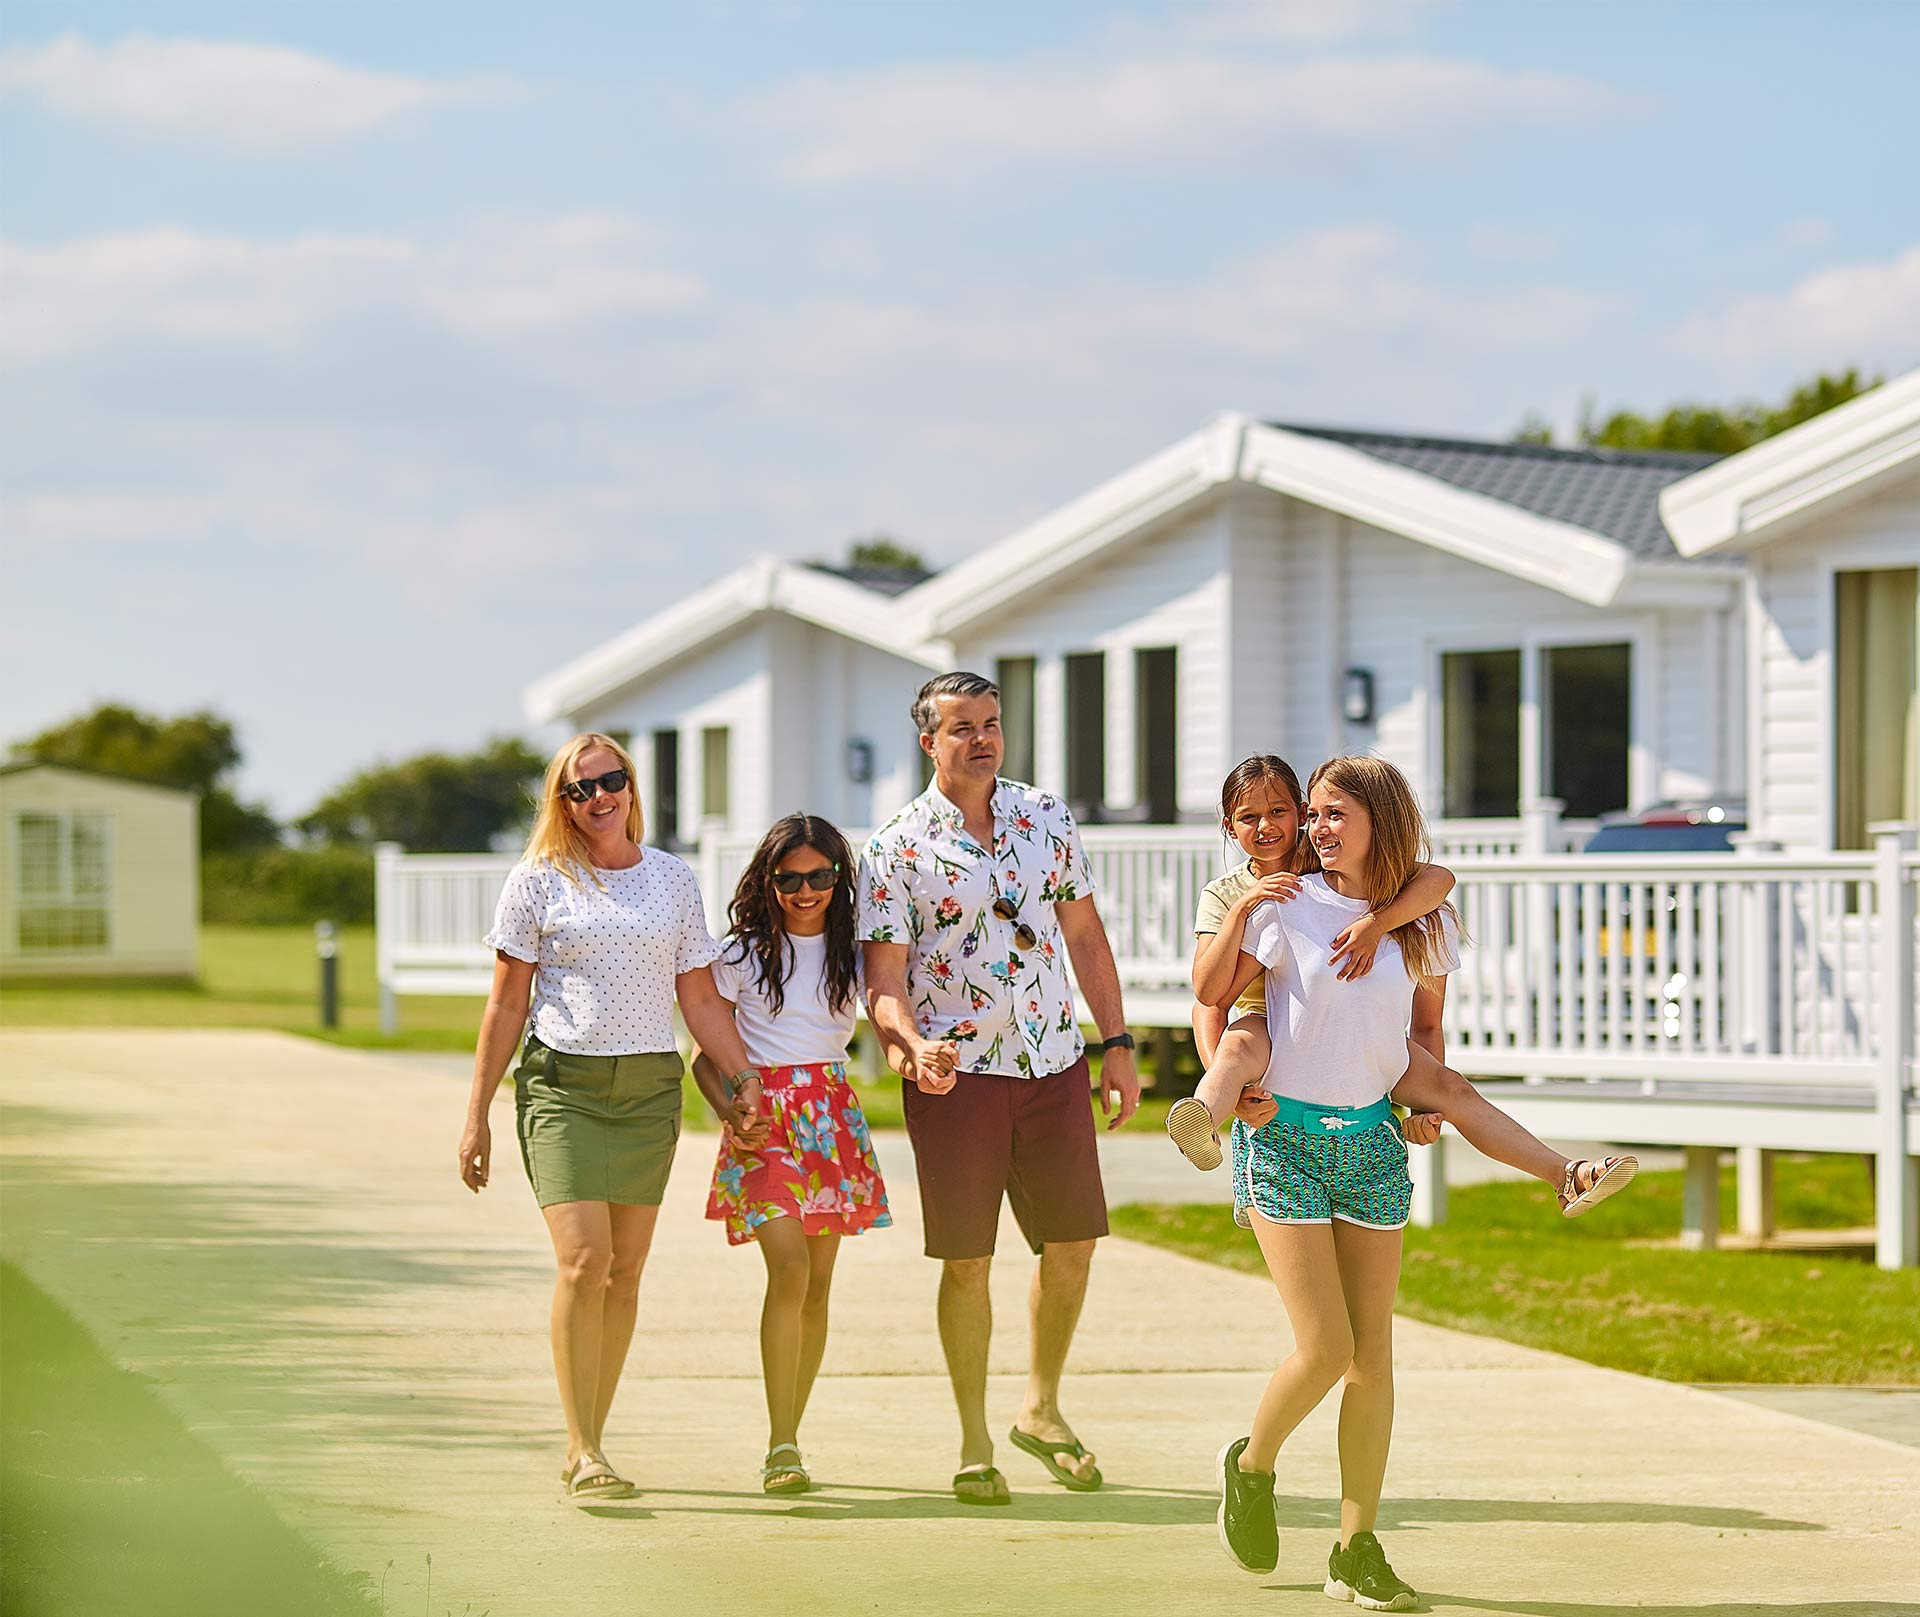 8 Best Holiday Parks for Teenagers They're Bound to Love in 2021